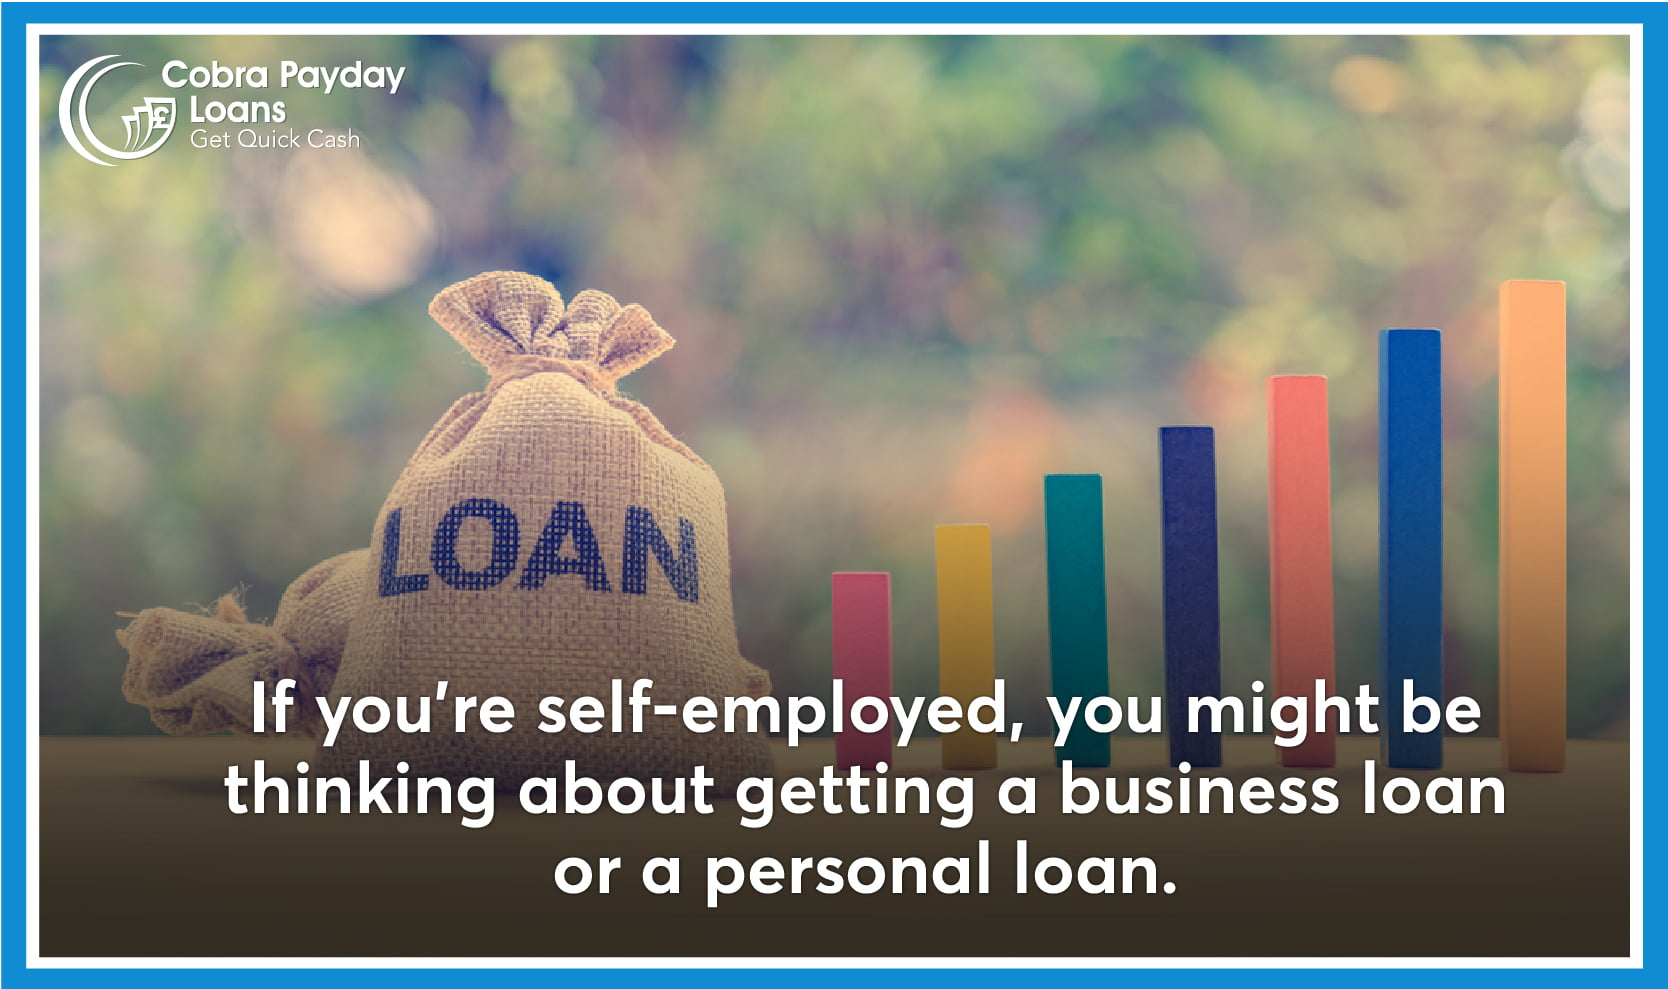 If you're self-employed, you might be thinking about getting a business loan or a personal loan